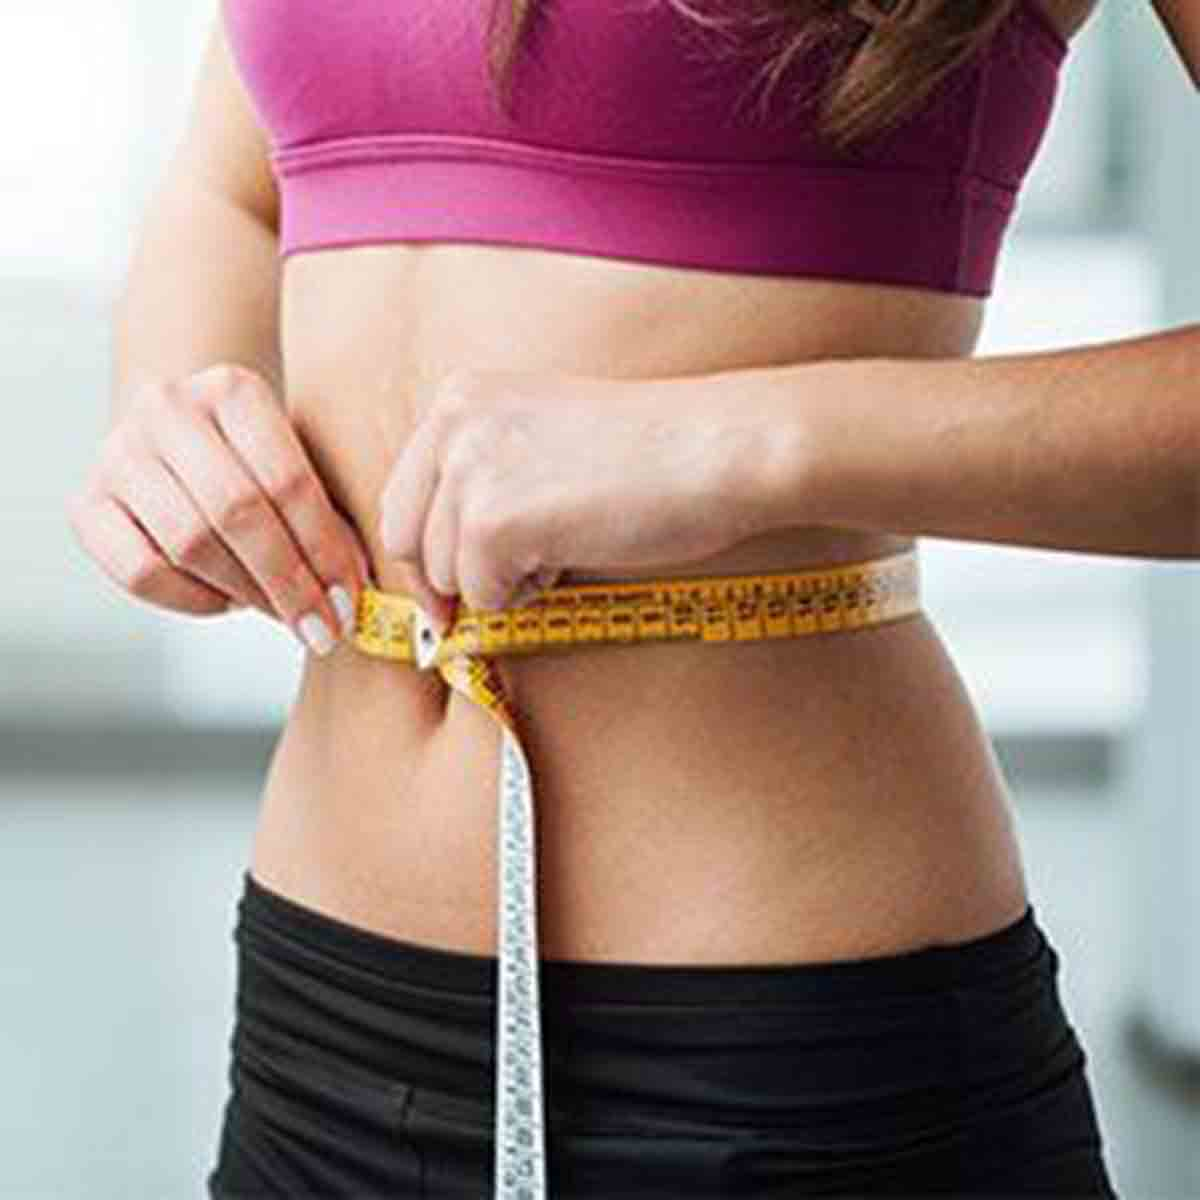 How To Use Glucomannan Powder For Weight Loss